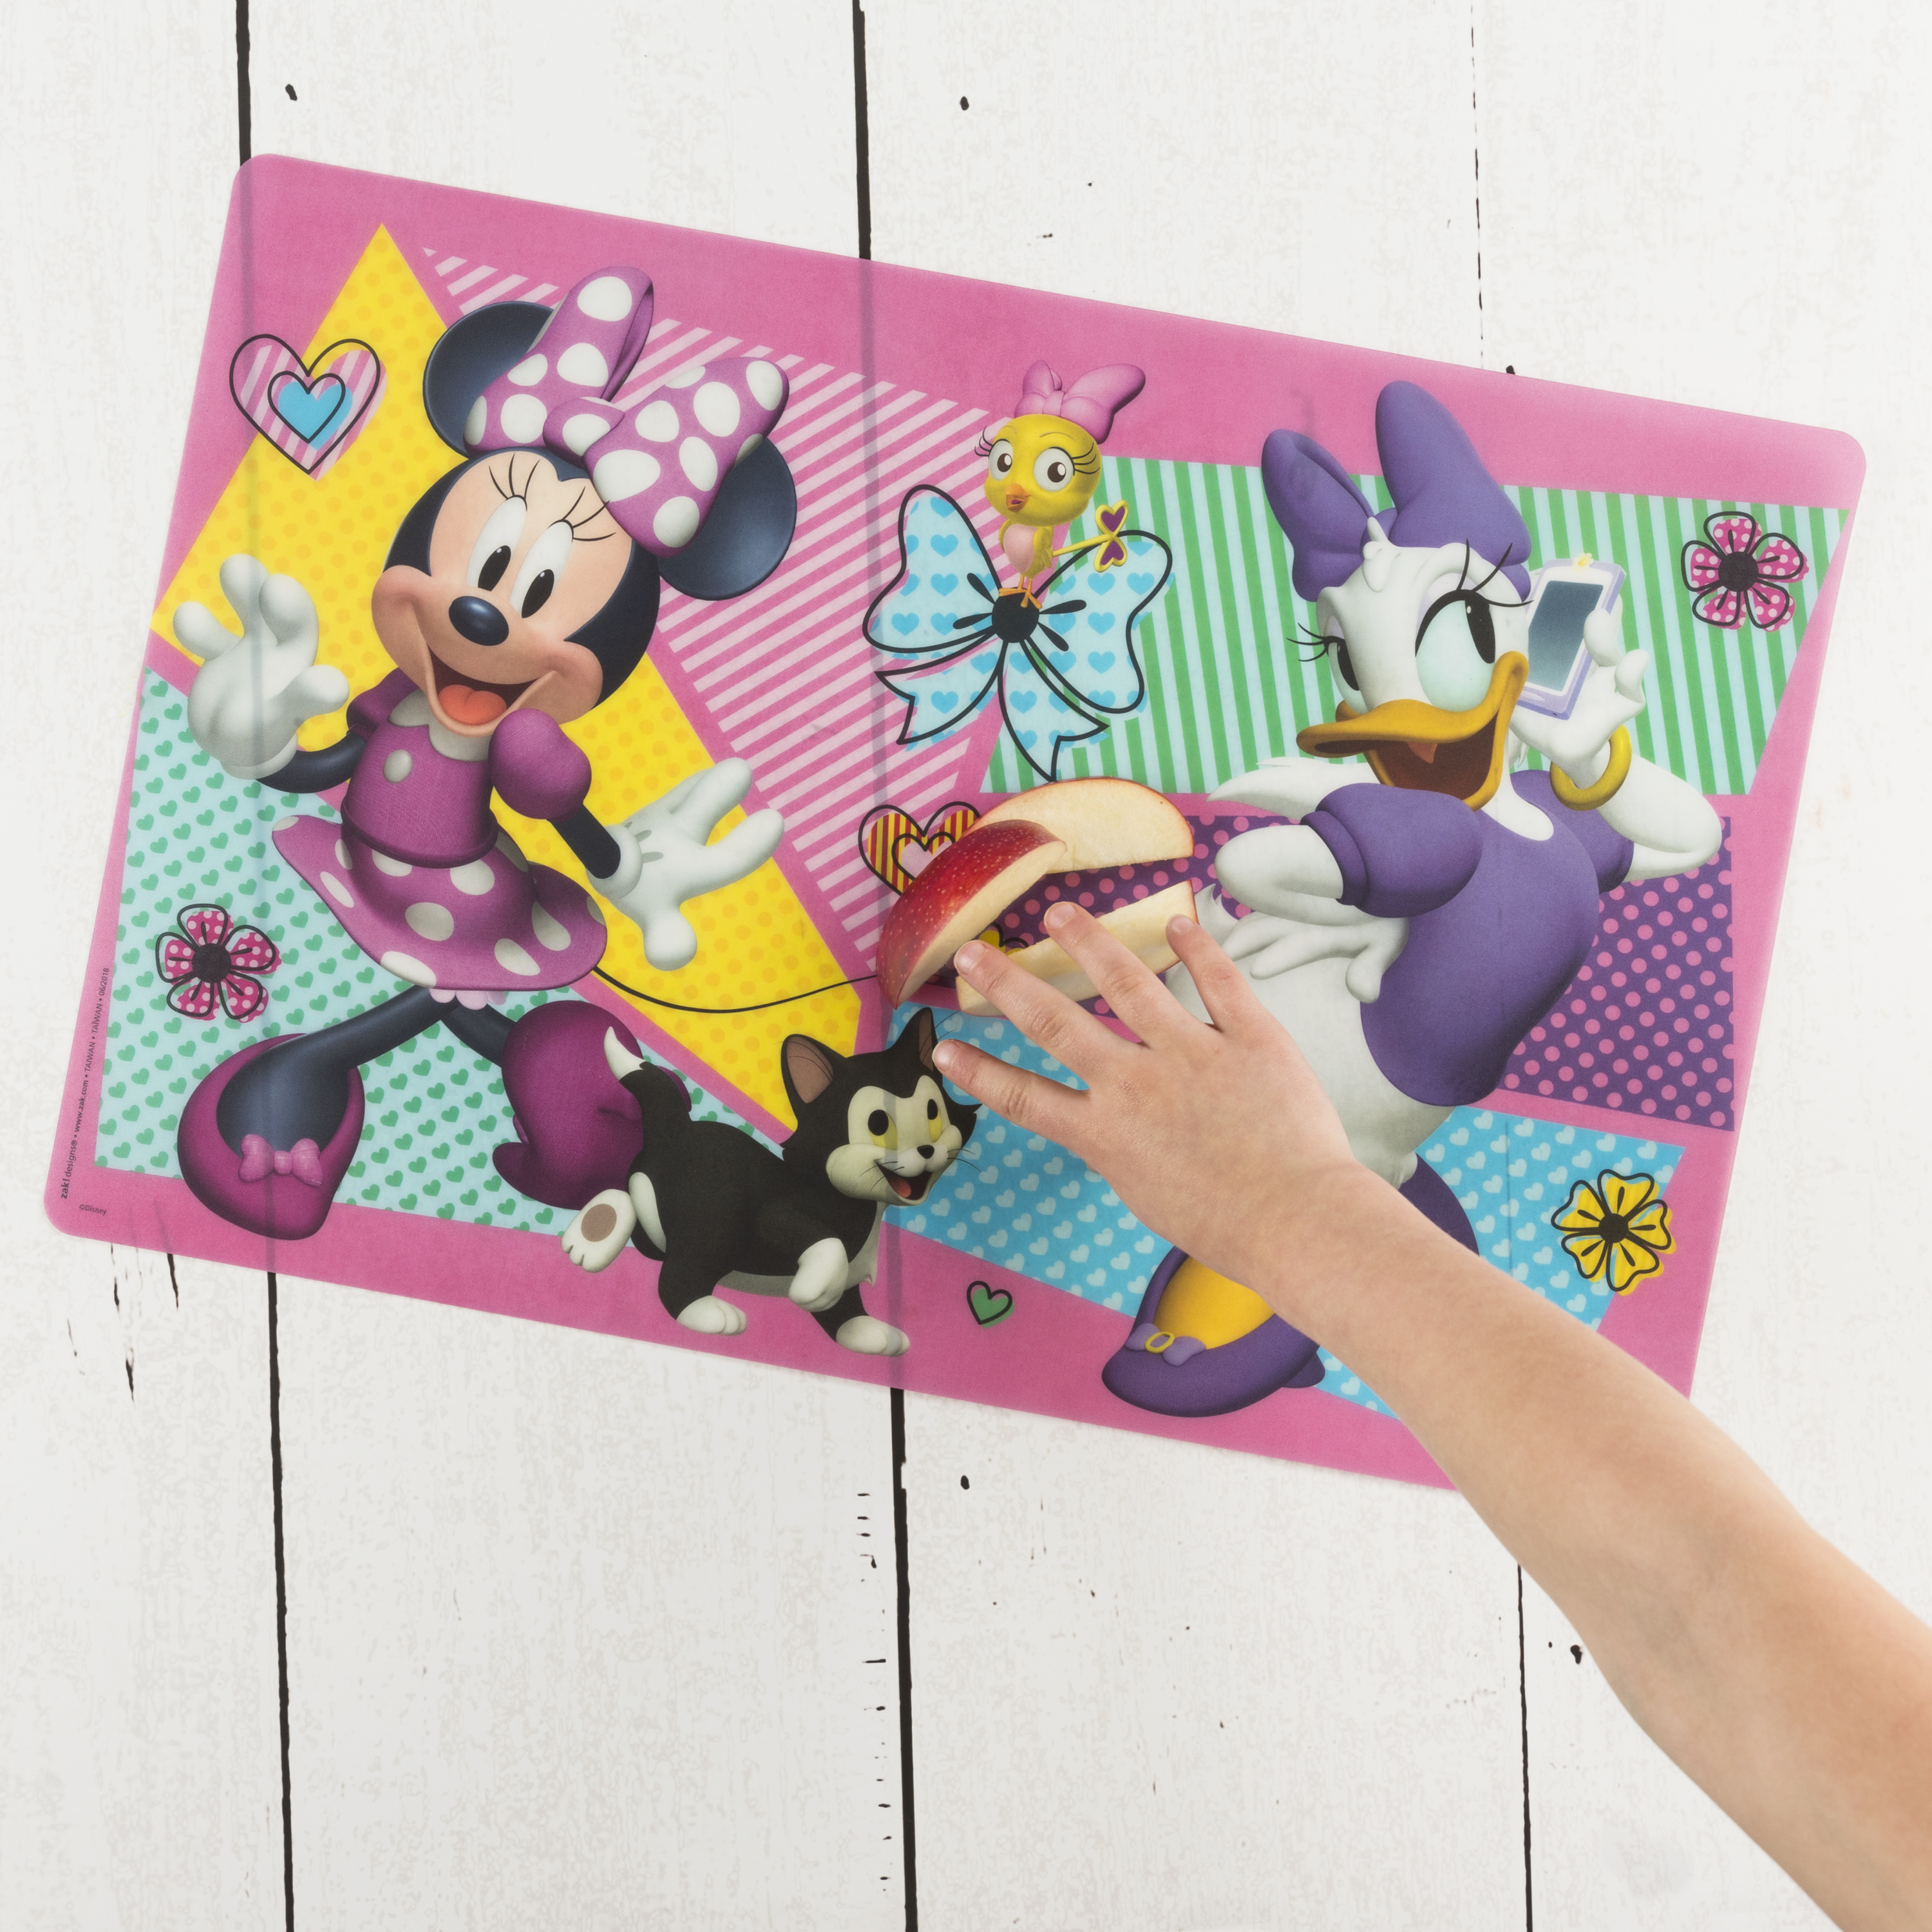 Disney Kid's Placemat, Minnie Mouse slideshow image 3